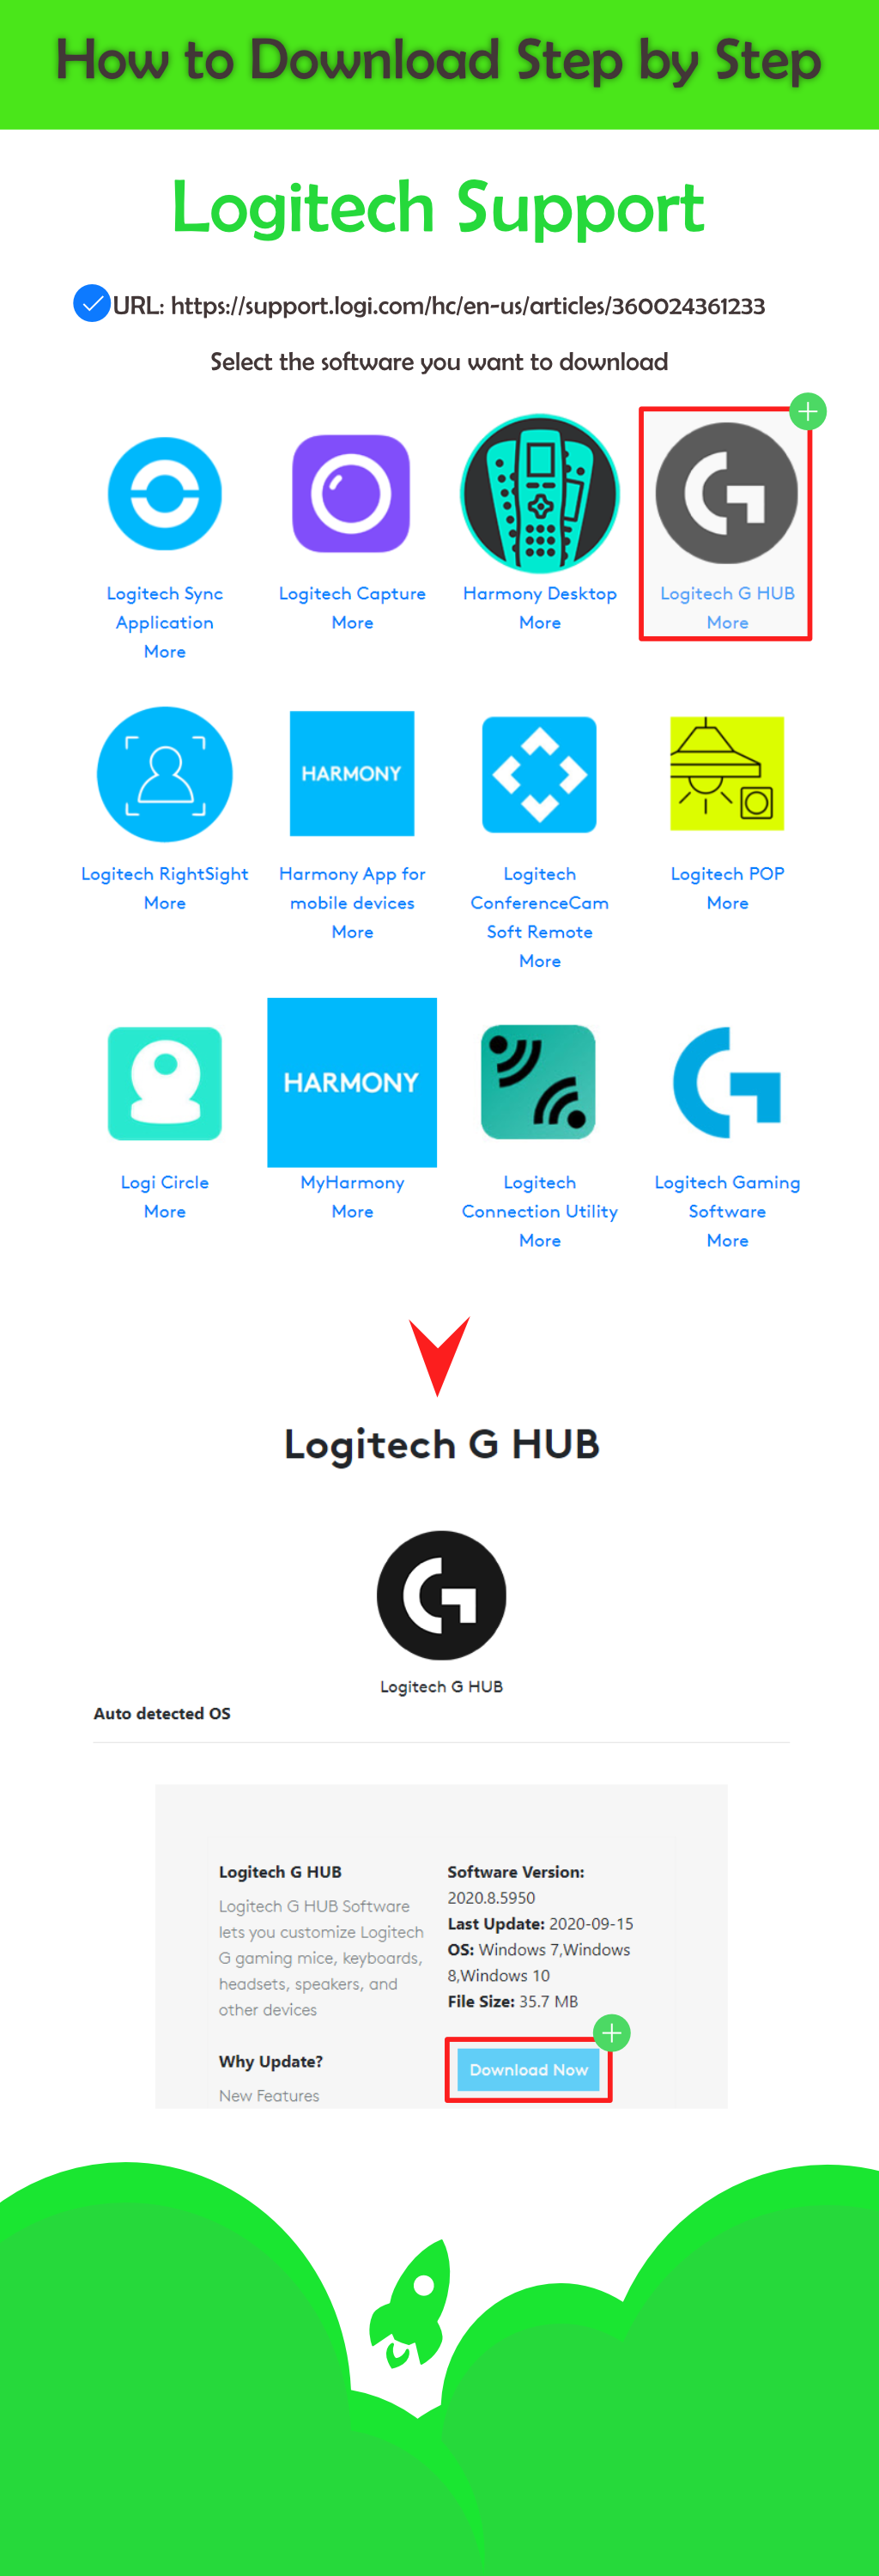 How to Download Logitech Software on the Official Website